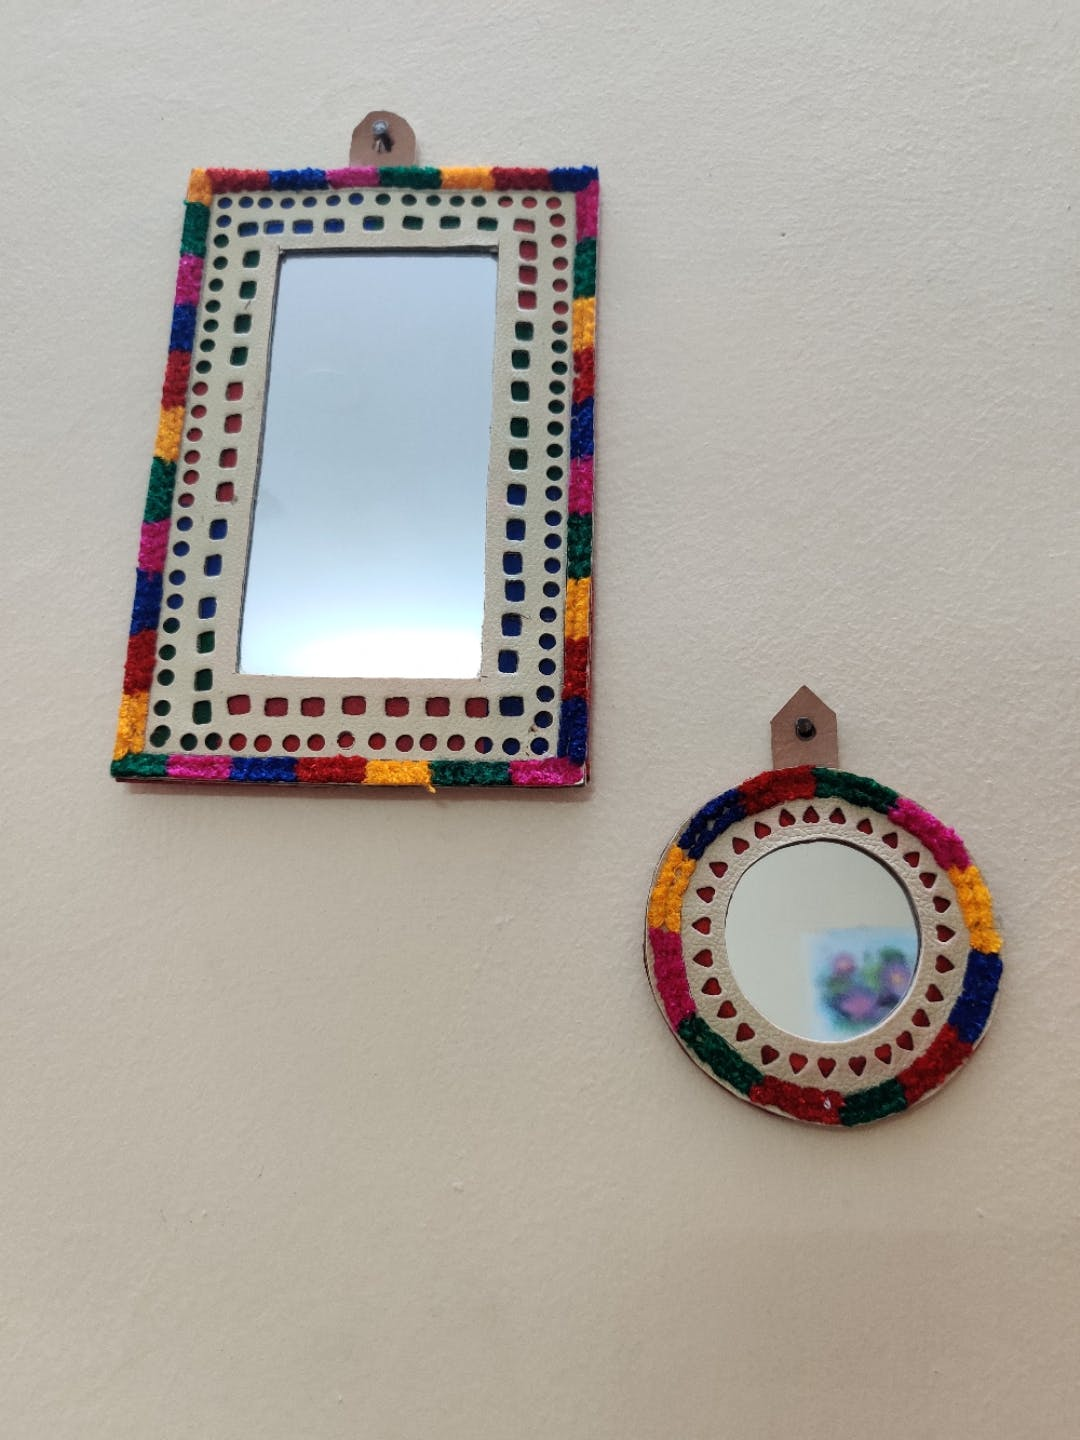 Picture frame,Fashion accessory,Rectangle,Ornament,Jewellery,Circle,Art